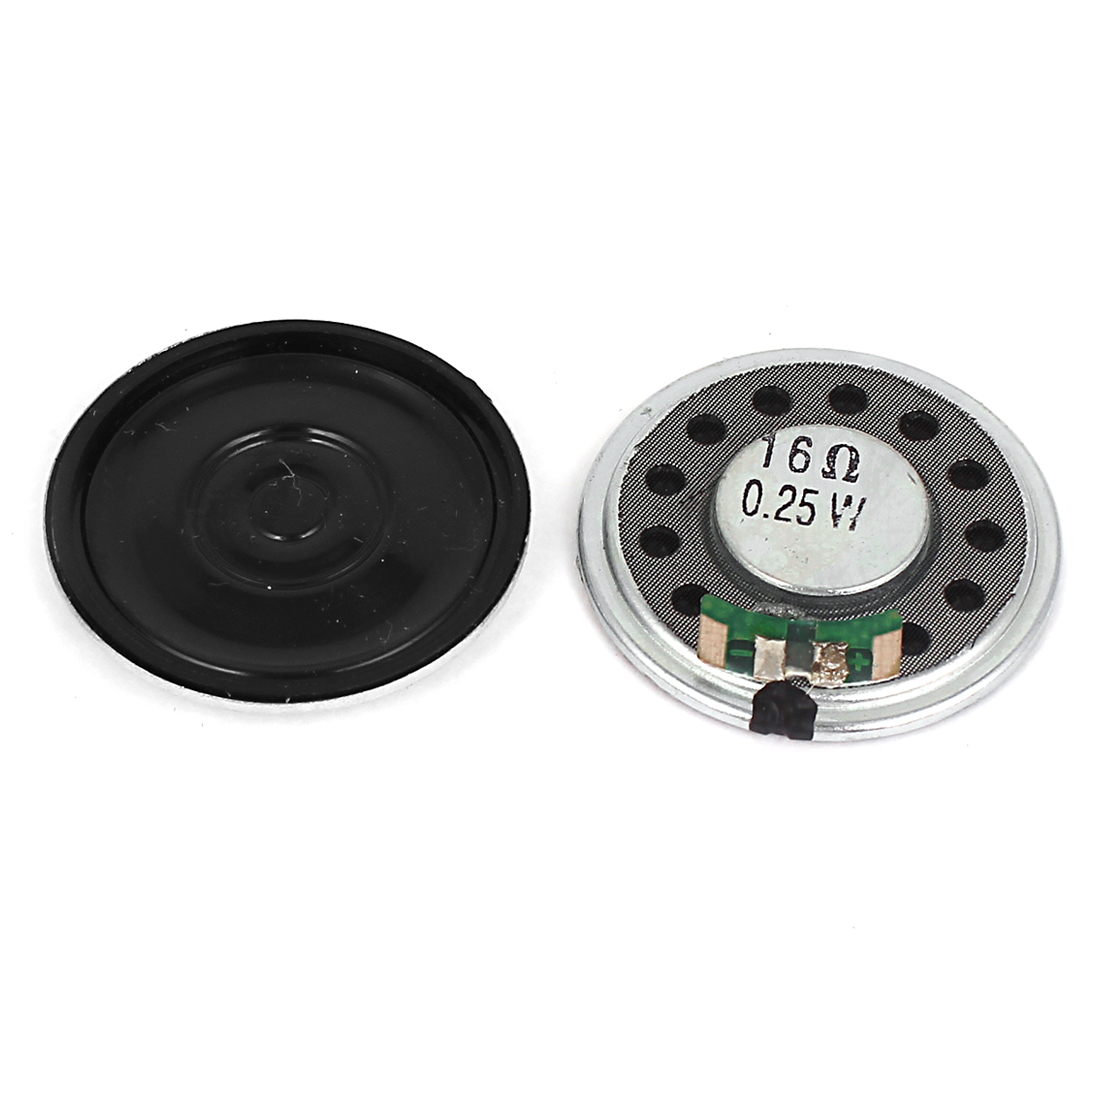 16Ohm 0.25W Doorbell 36mm Dia Round Magnet Sealed Speaker Loudspeaker 2PCS